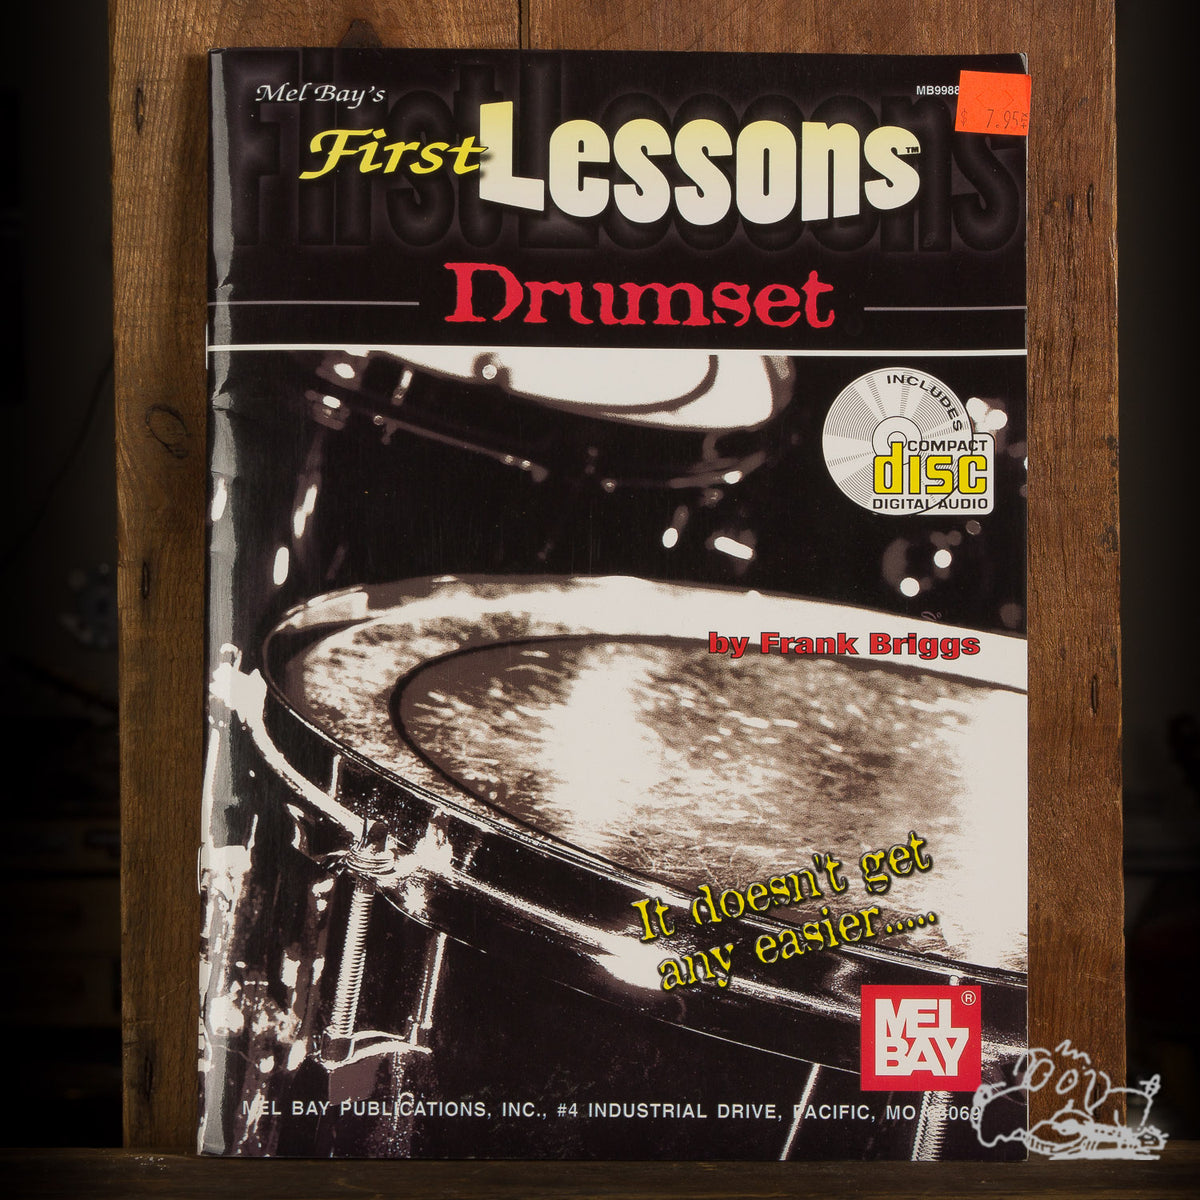 Mel Bay's First Lessons Drumset